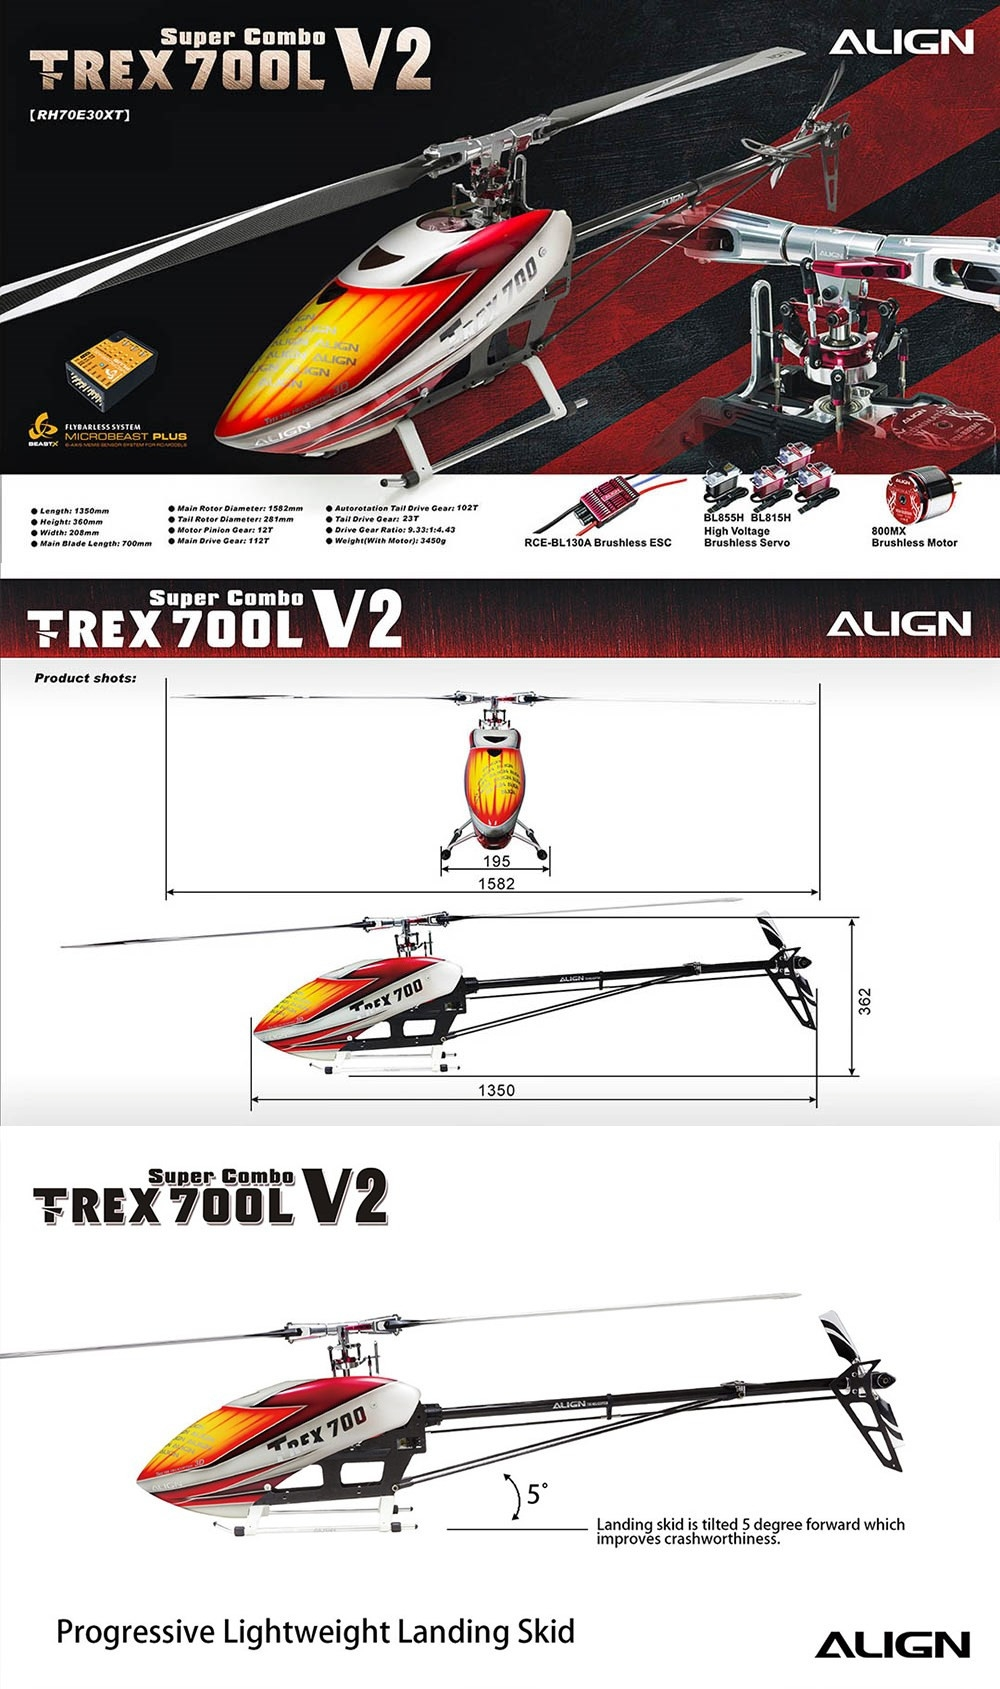 ALIGN T-REX 700L V2 6CH 3D Flying RC Helicopter Super Combo With Brushless 520KV Motor Servo ESC Flybarless System